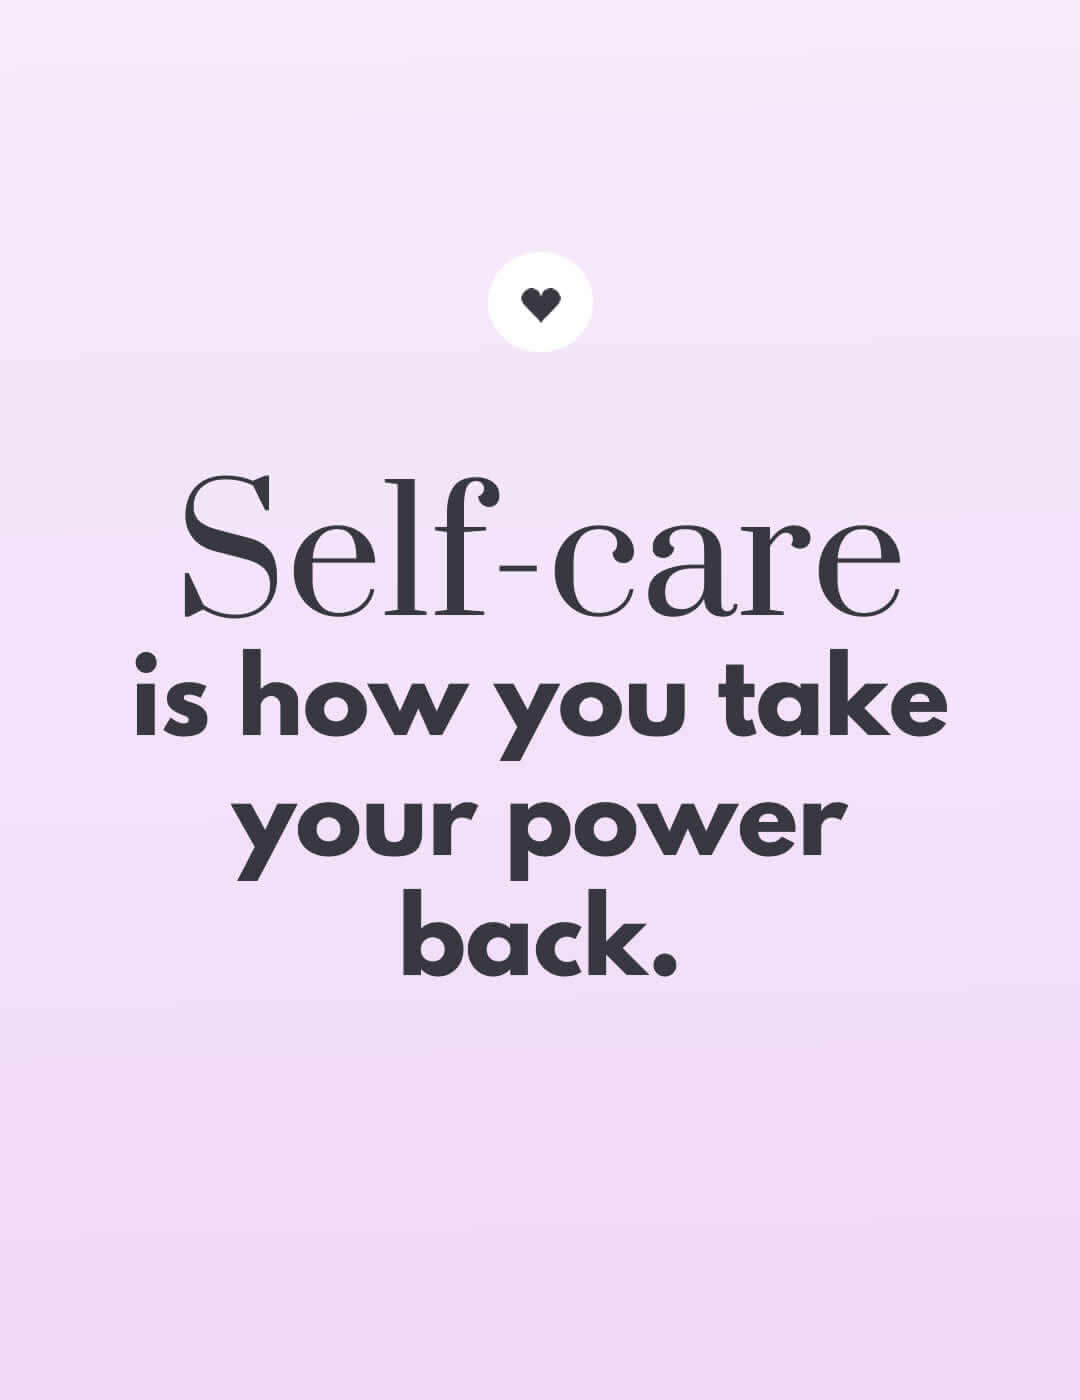 inspiring quote on how to stay positive with self care